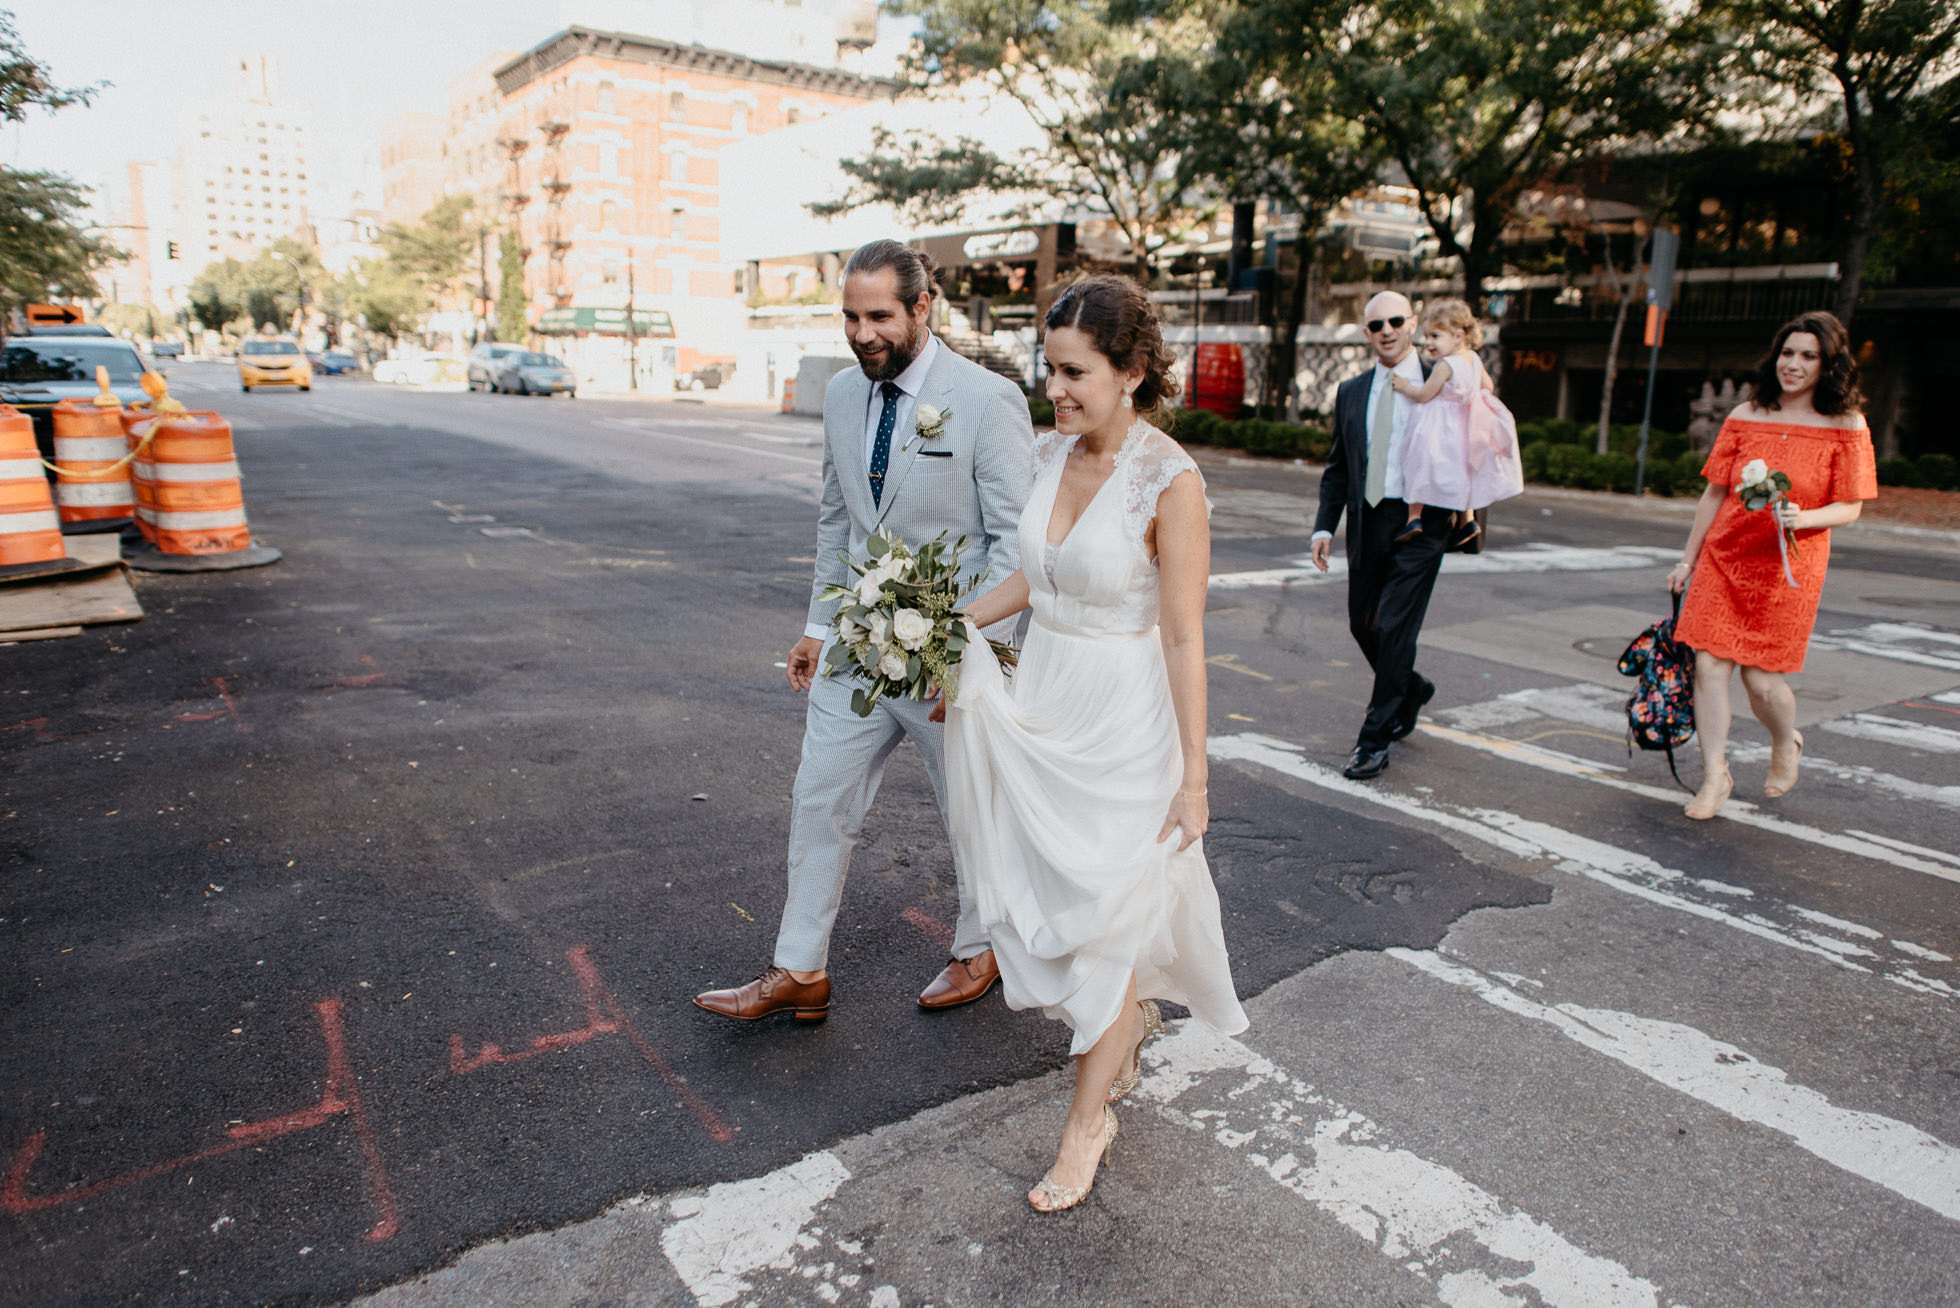 NYC street wedding photos